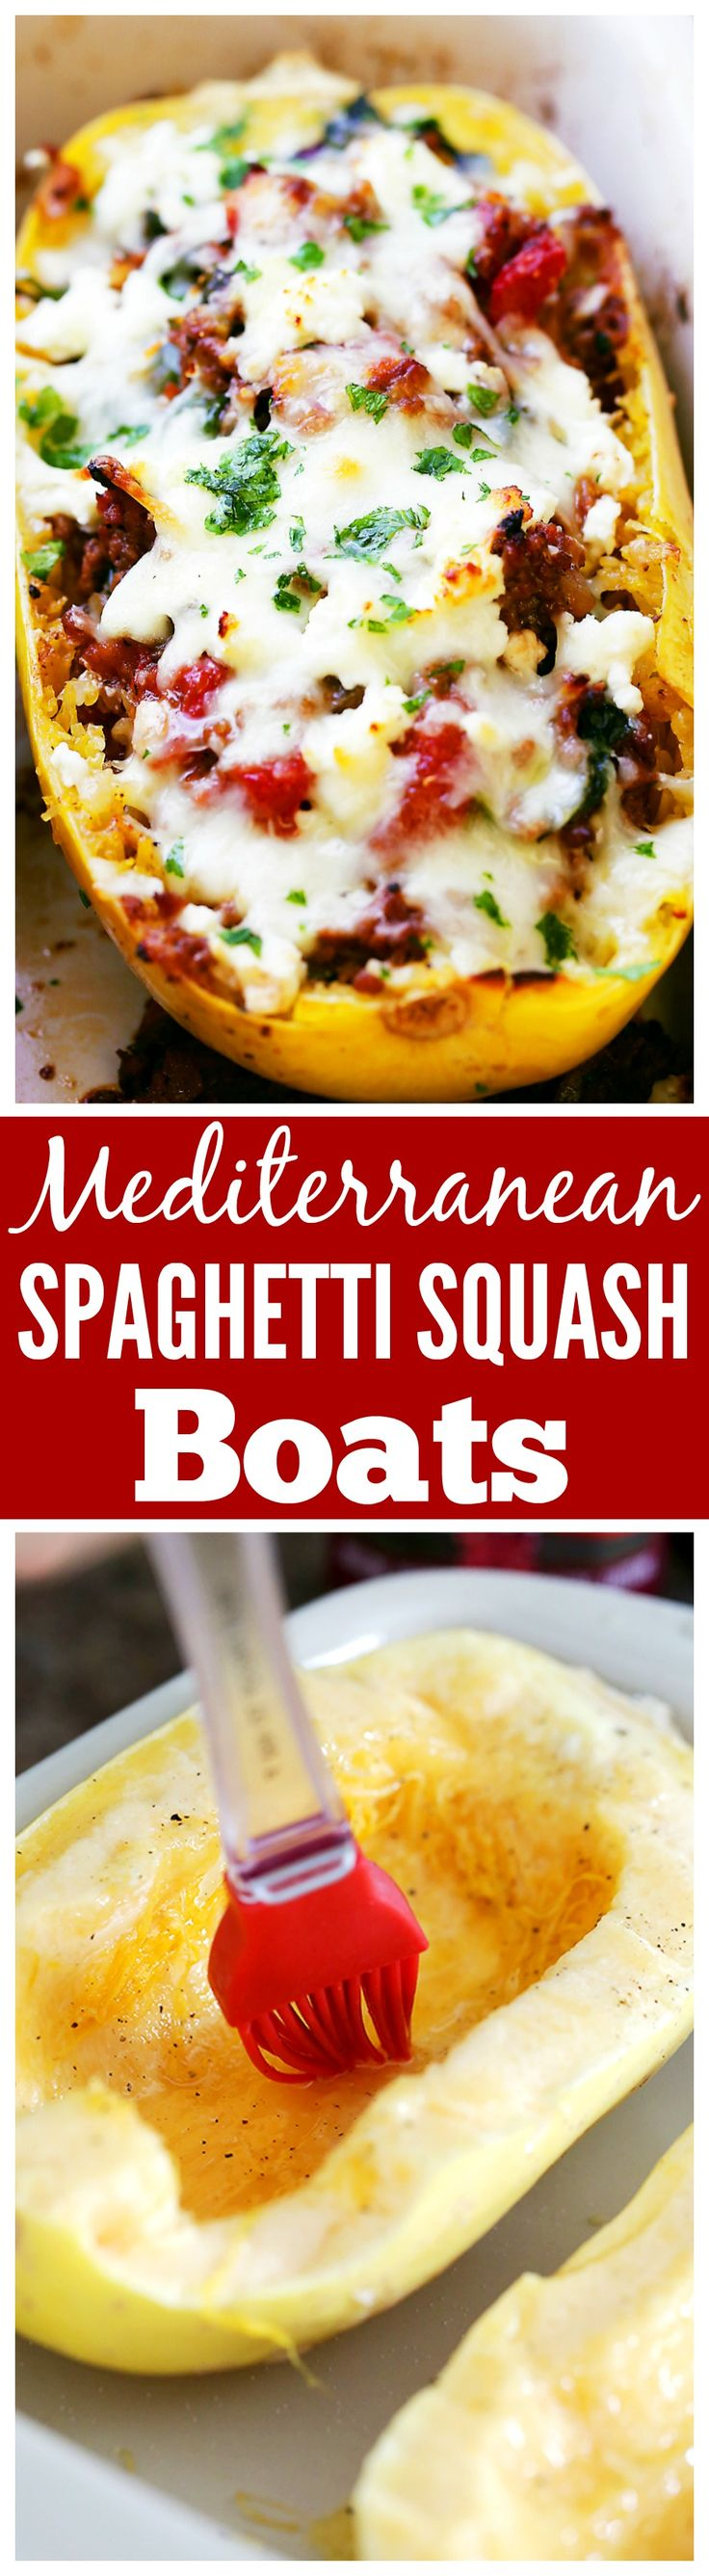 Mediterranean Spaghetti Squash Boats - Delicious, healthy, easy to make Spaghetti Squash boats loaded with ground turkey, tomatoes, kale and feta cheese.(Bake Squash Boats)